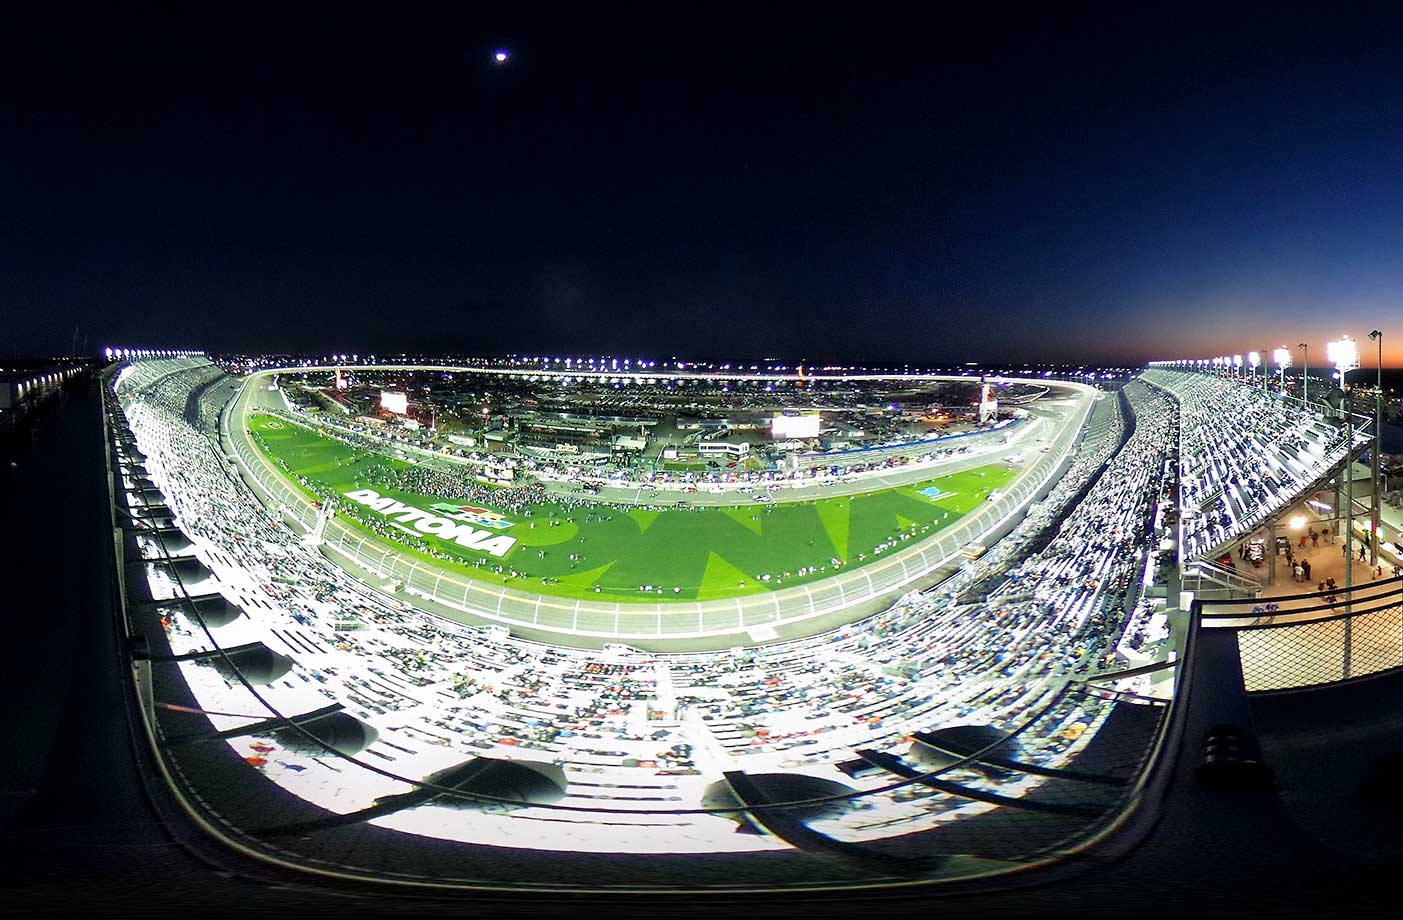 A general view of the atmosphere during driver introductions prior to the start of the NASCAR Sprint Cup Series Can-Am Duels at Daytona International Speedway.